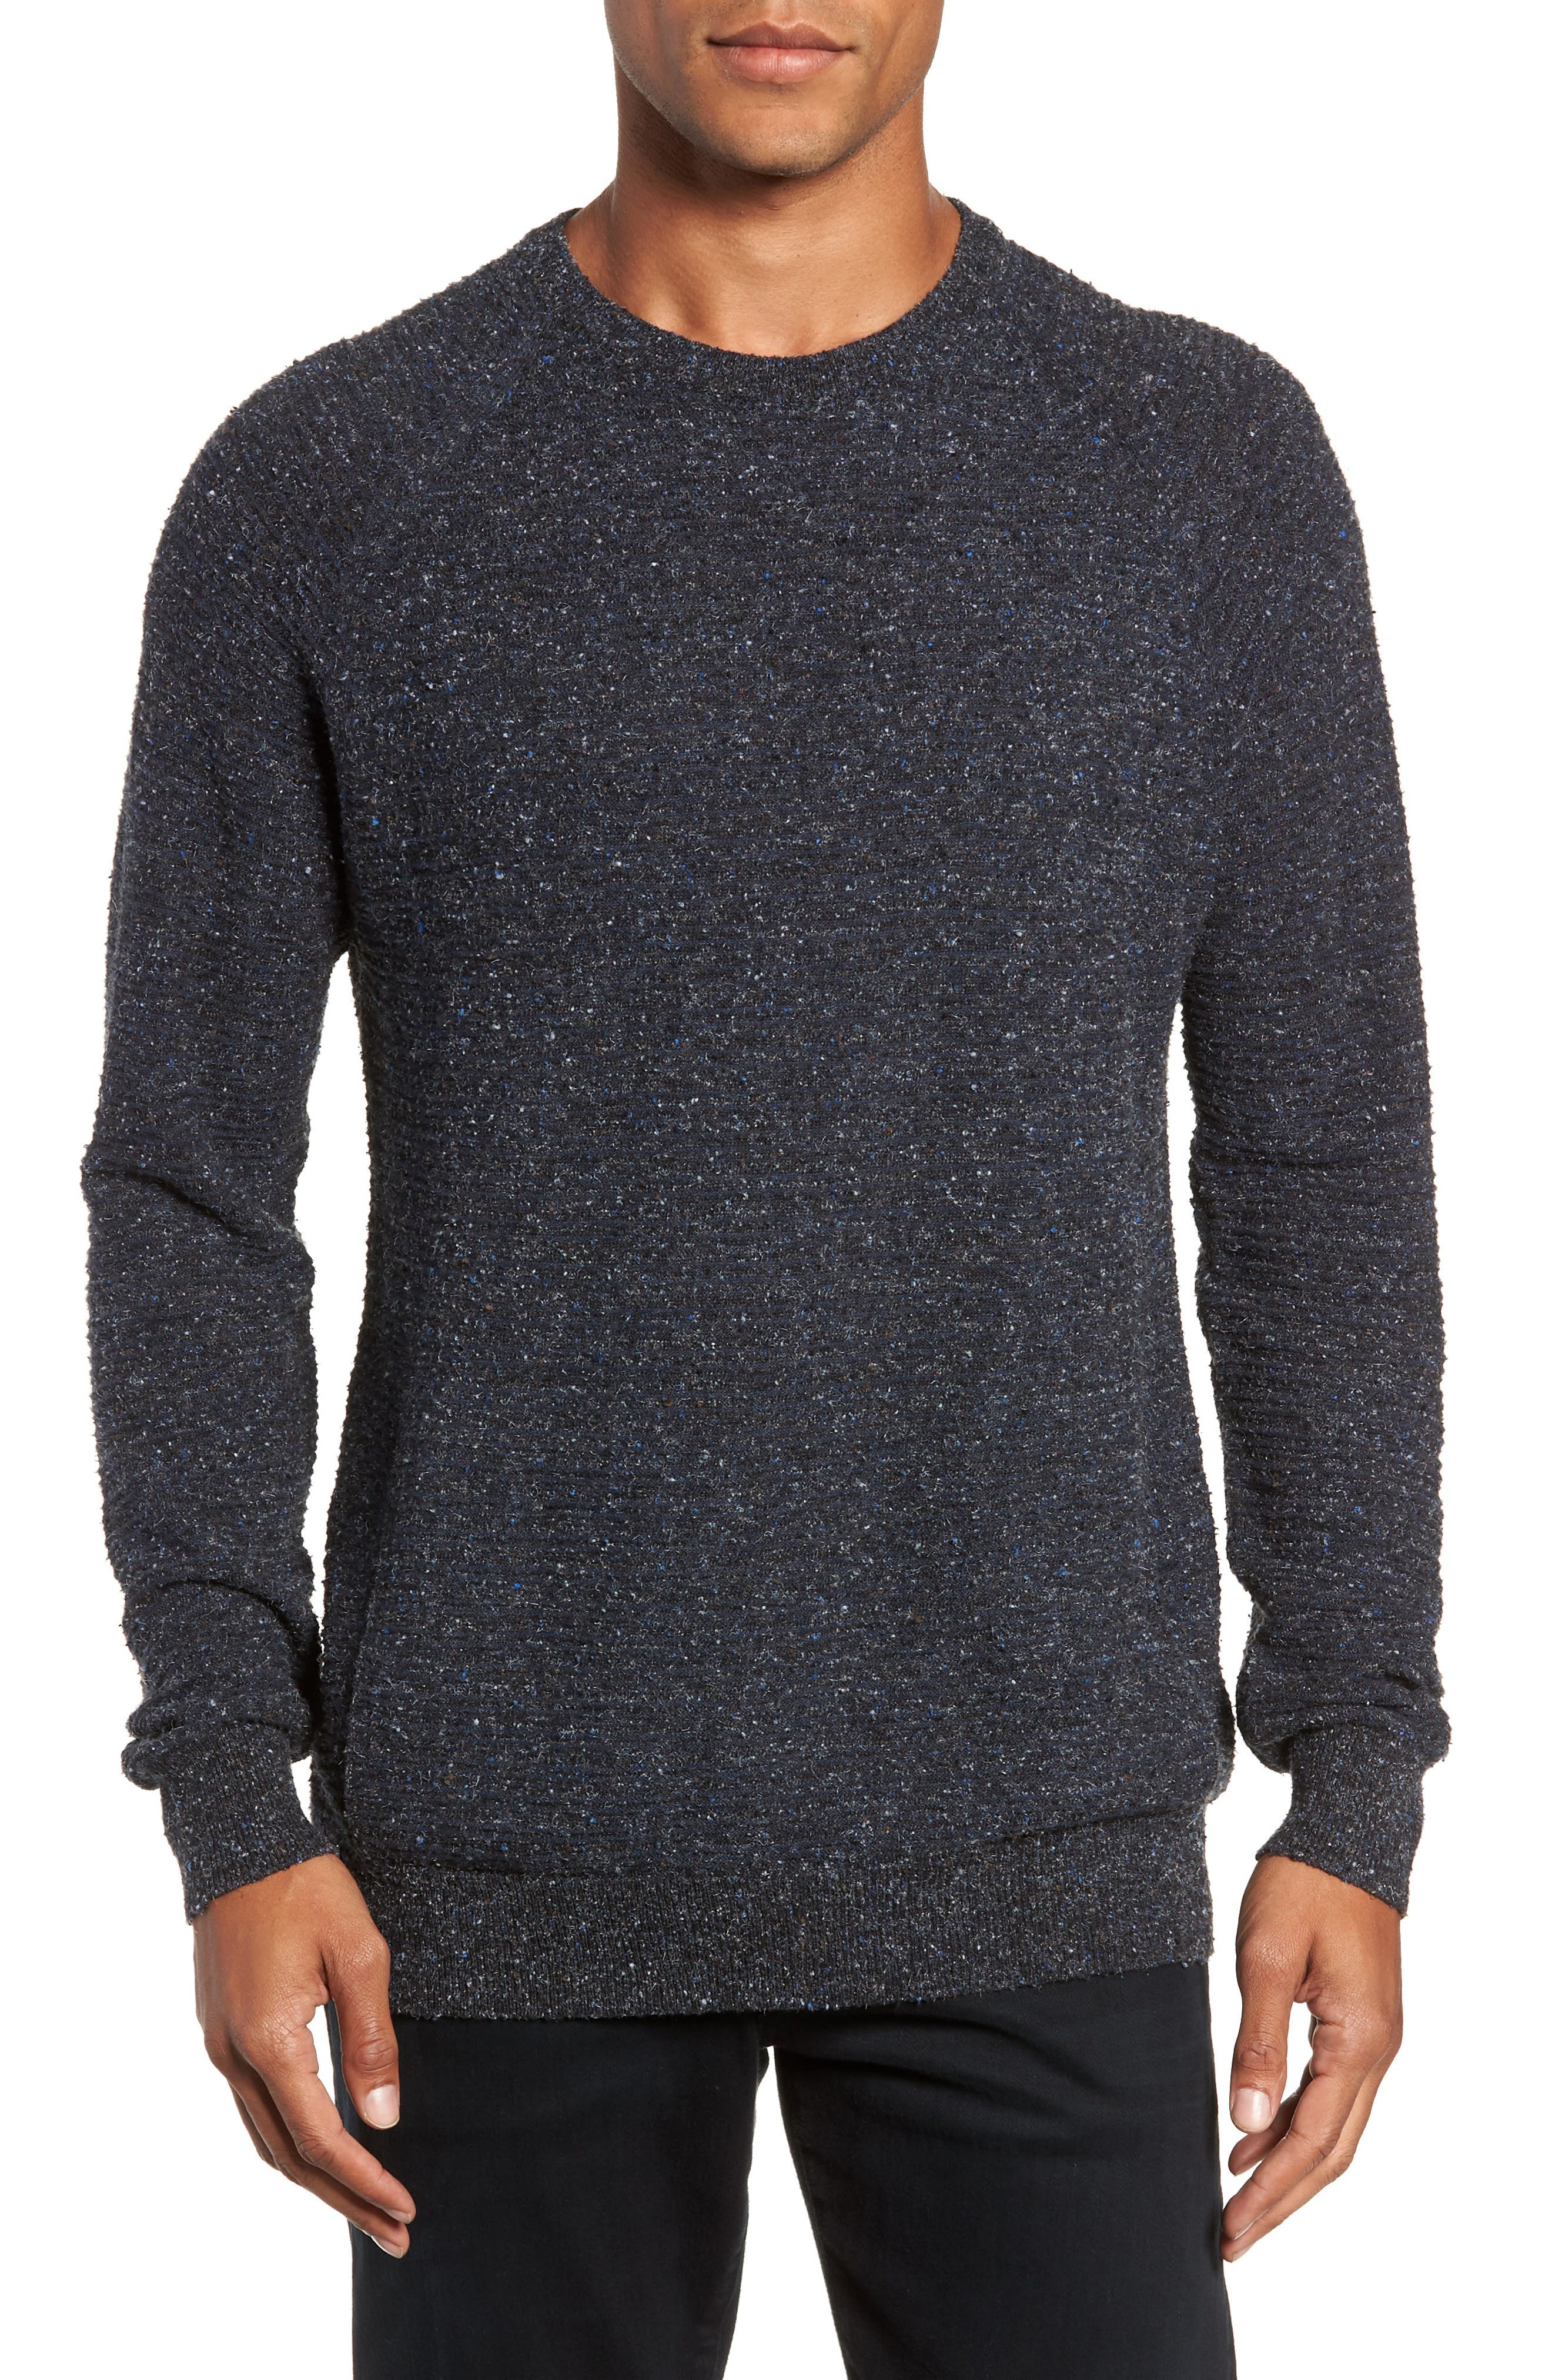 Speckle Stripe Sweater,                             Main thumbnail 1, color,                             NAVY/ CHARCOAL